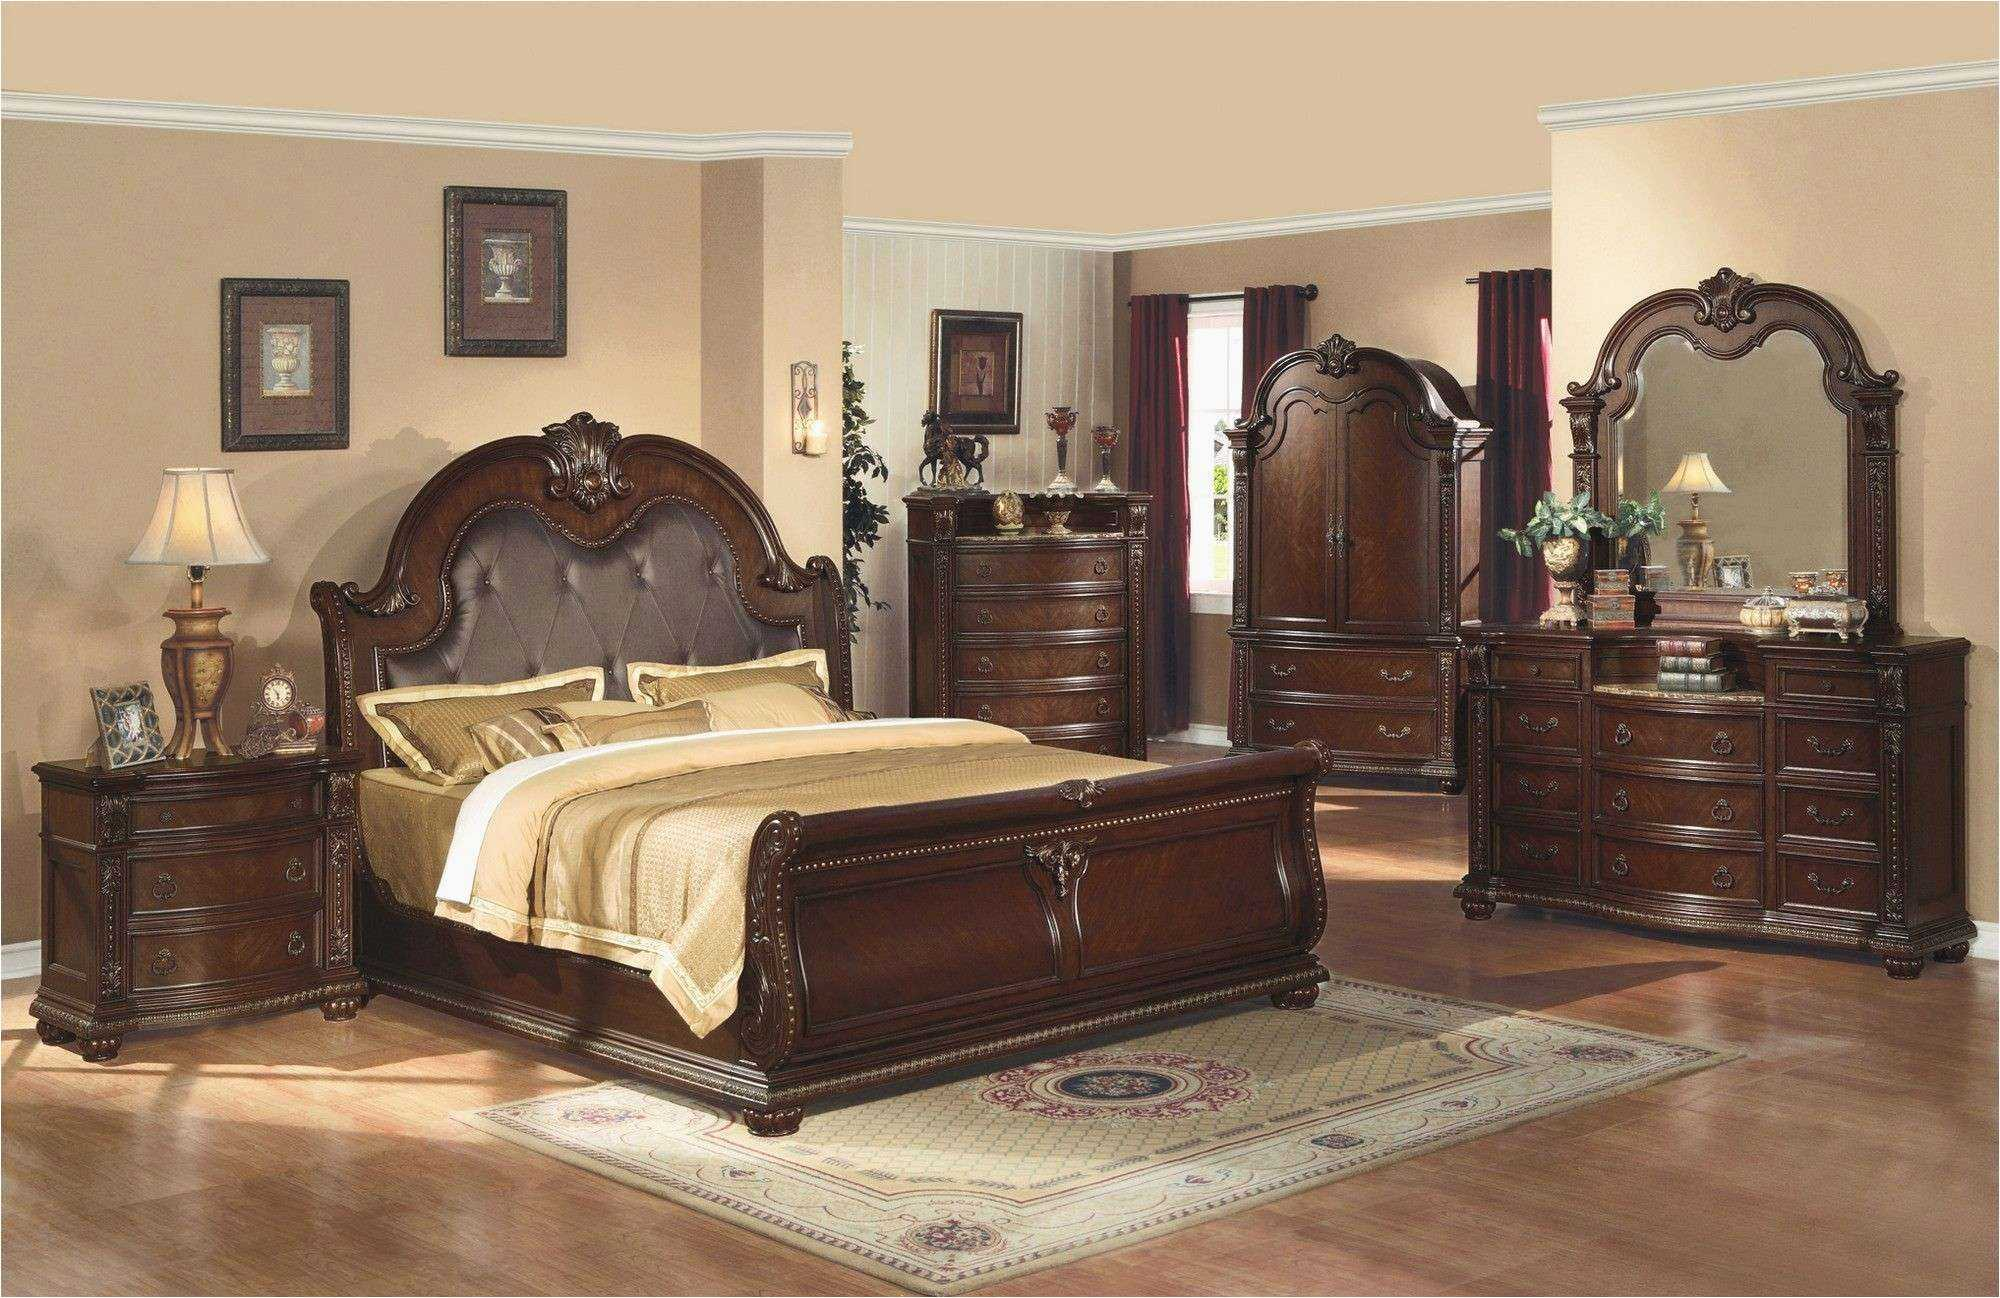 Beautiful American Furniture Warehouse Bedroom Sets With Chi